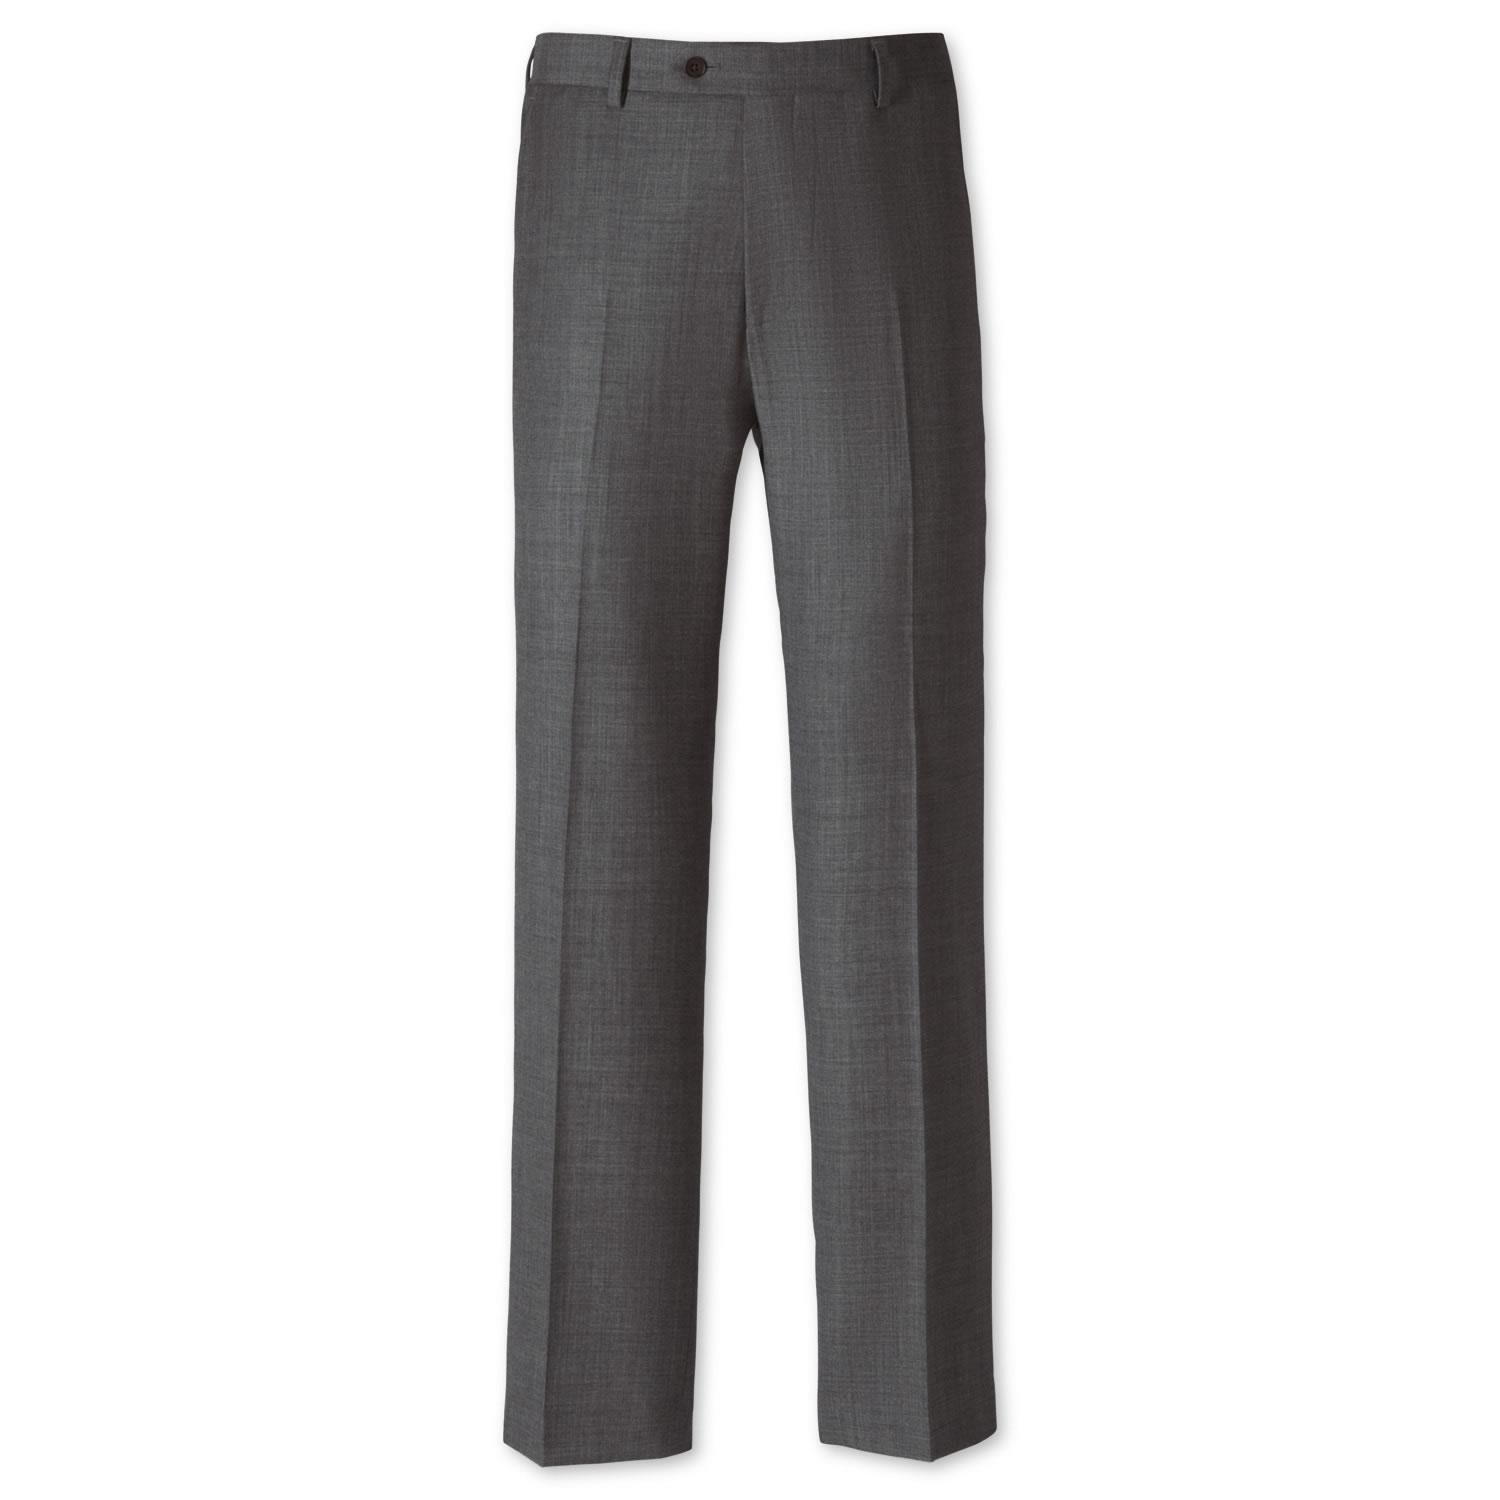 Grey Classic Fit Apsley Sharkskin Business Suit Trousers Size W32 L32 by Charles Tyrwhitt